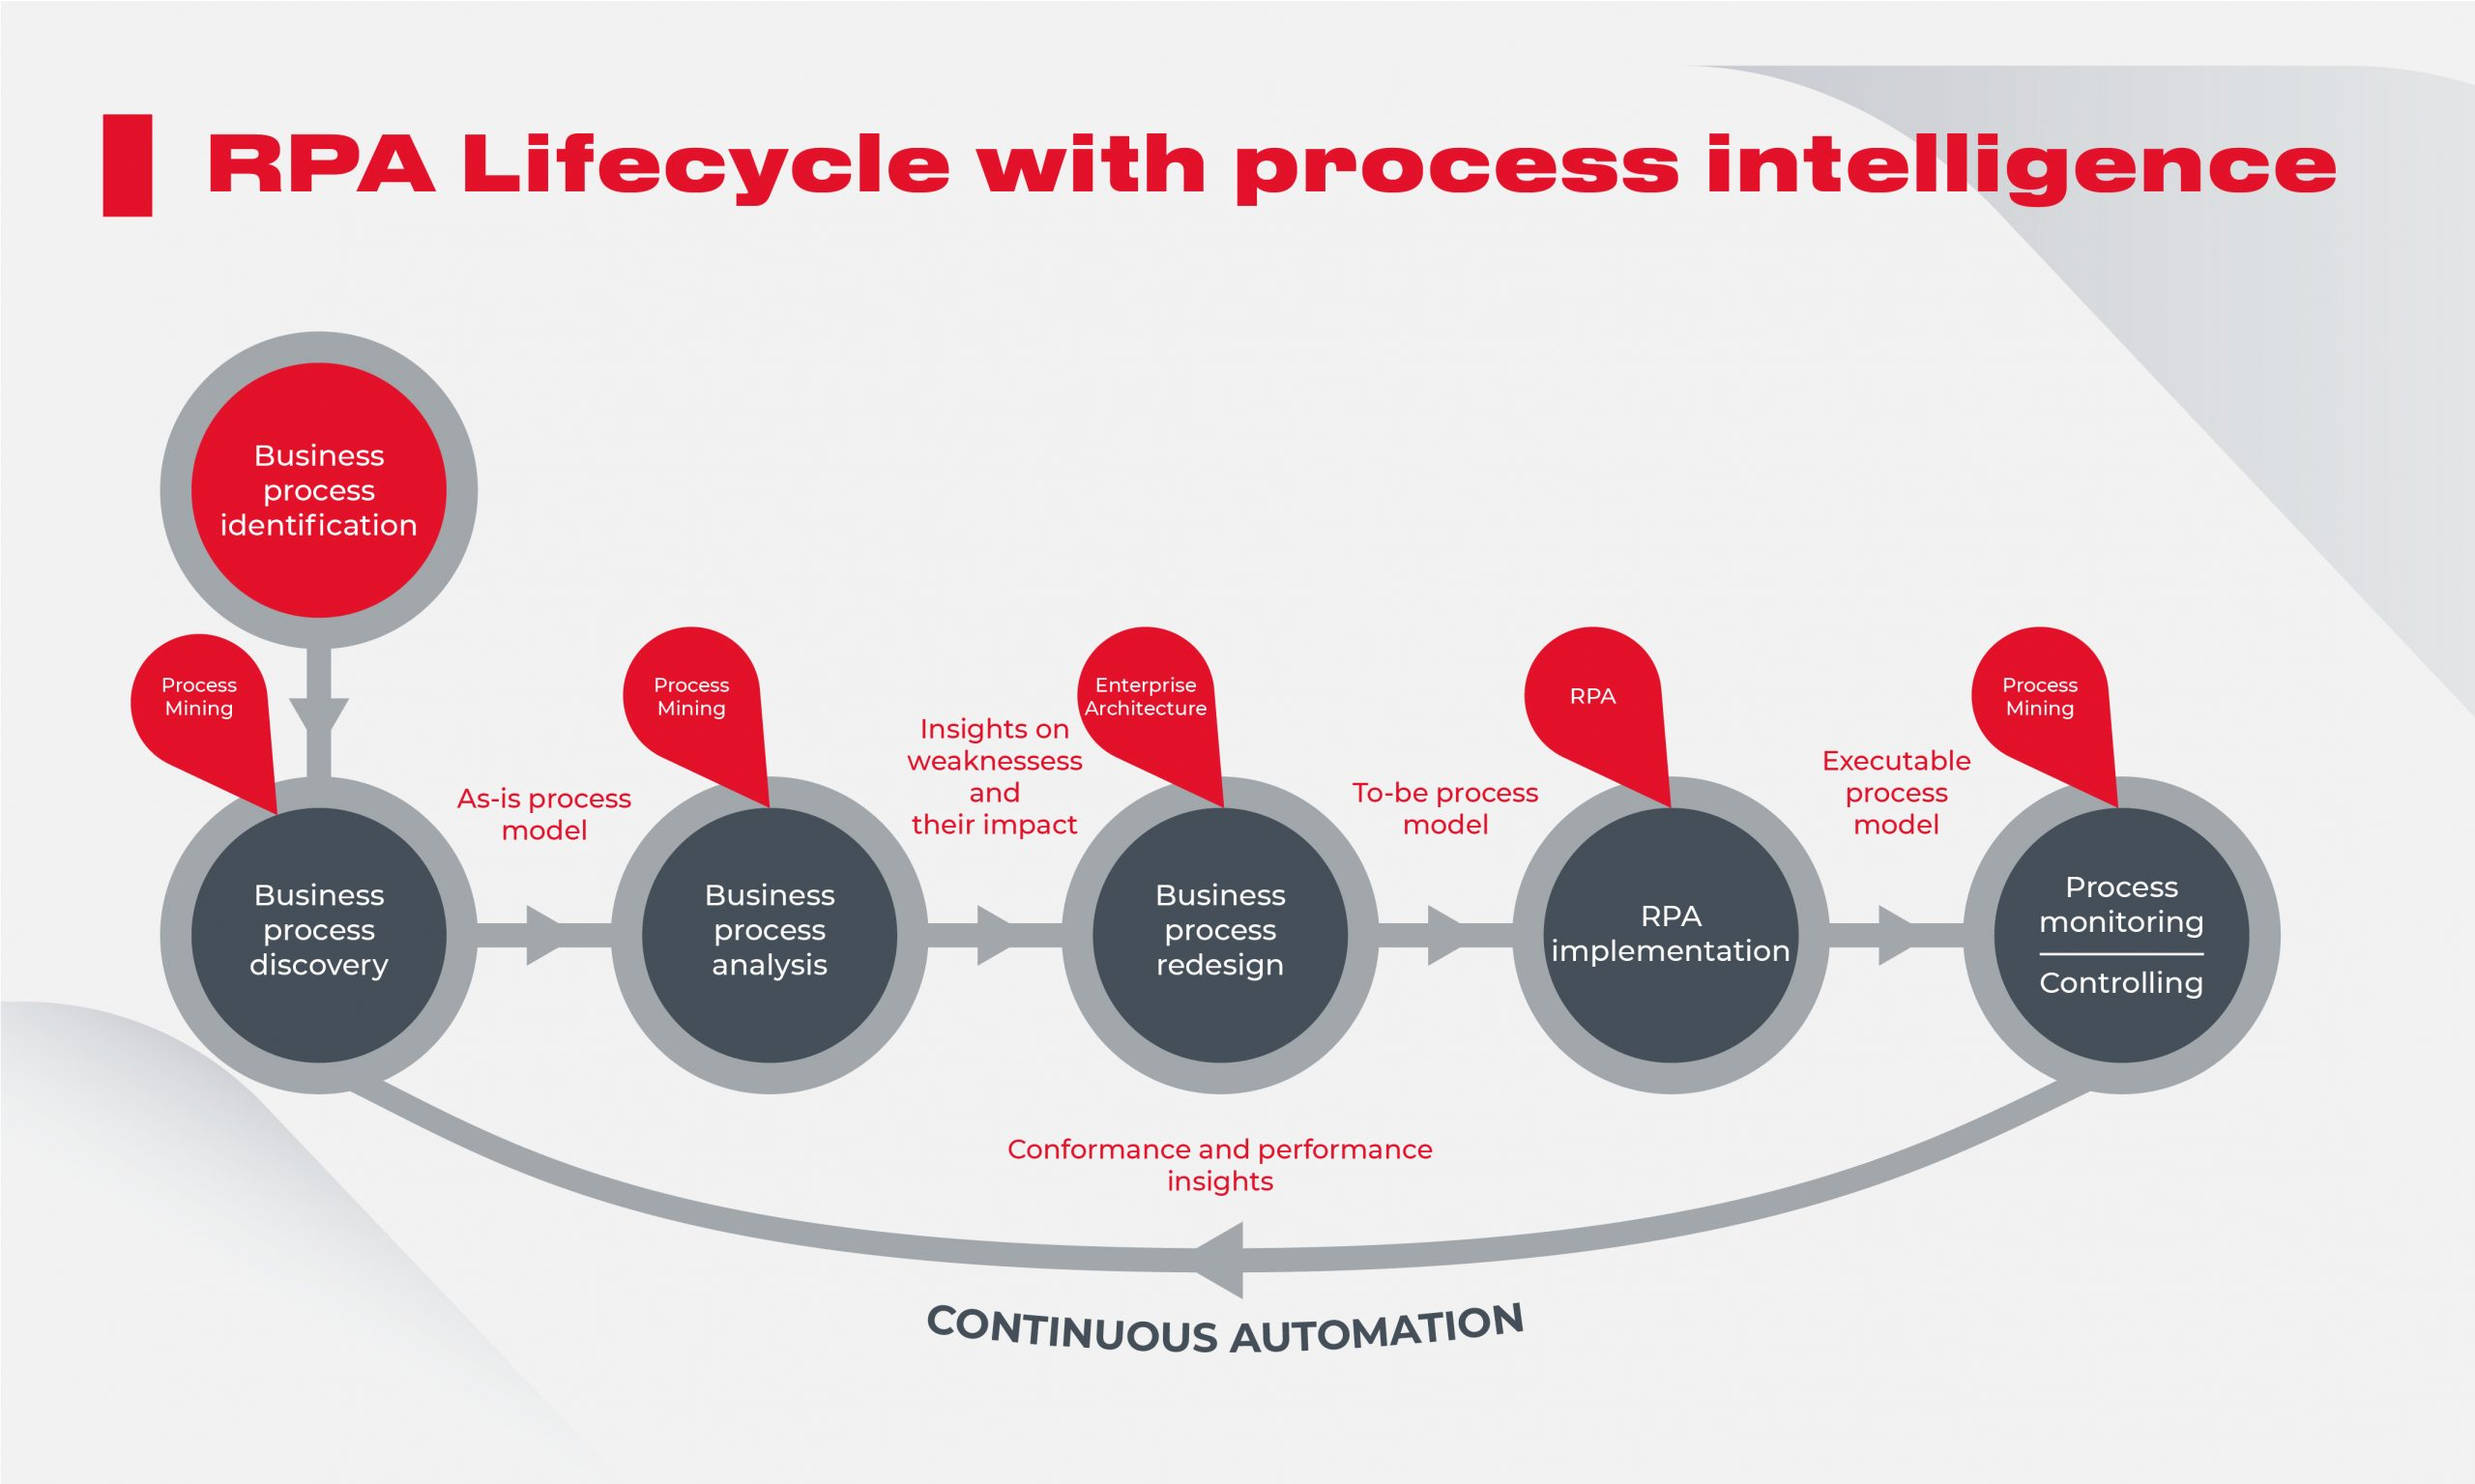 RPA Lifecycle with process intelligence